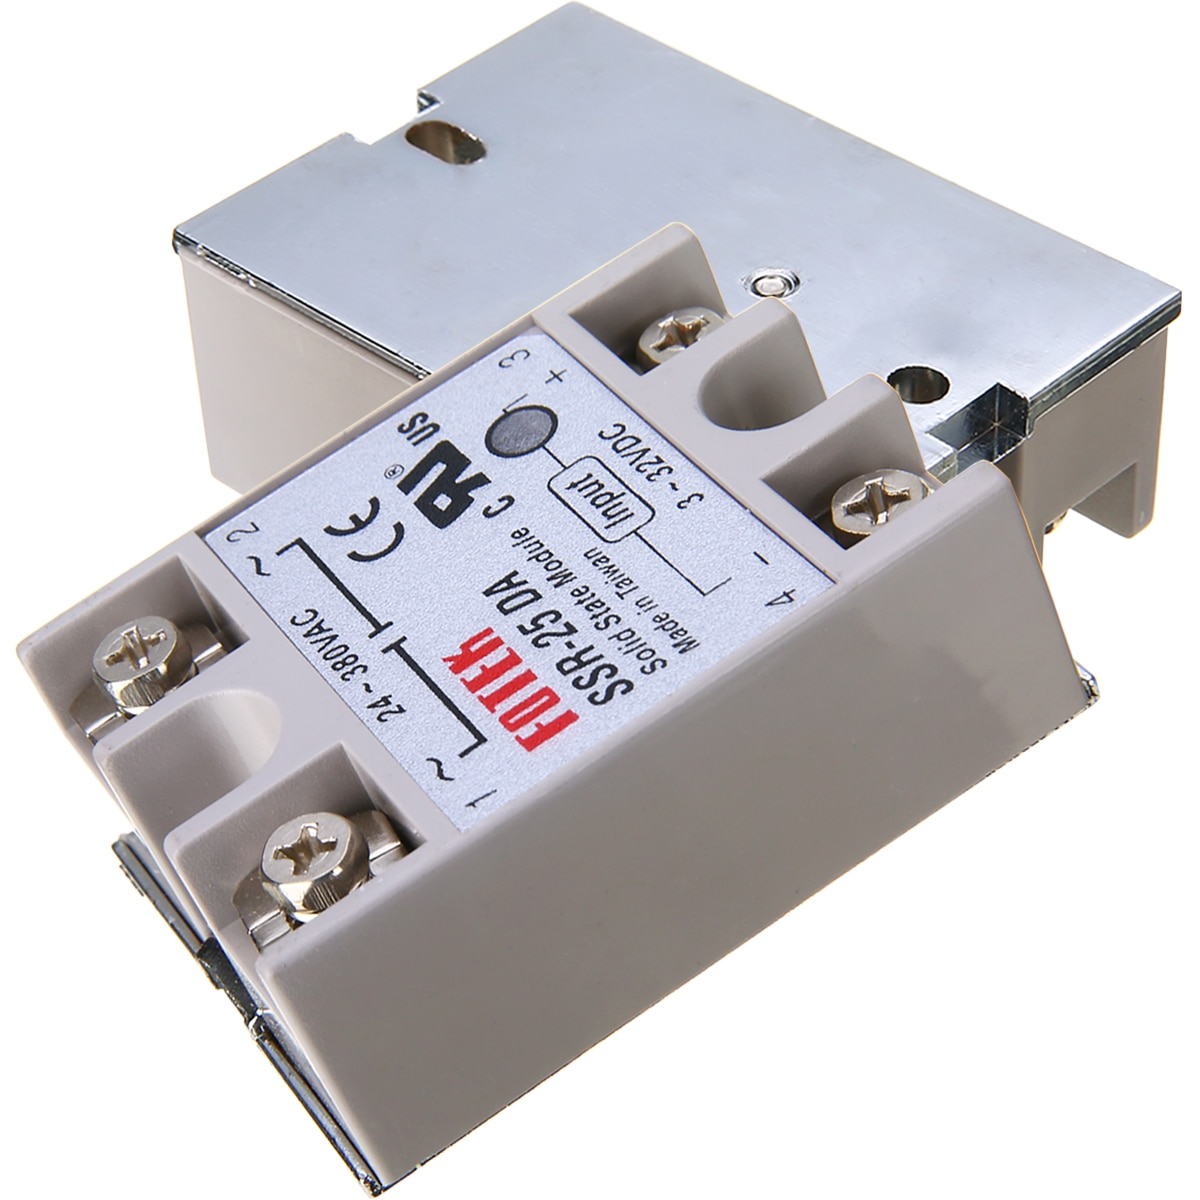 24-380V Output Voltage 25A SSR-25 DA Solid State Relay For PID Temperature Controller Electrical Equipments